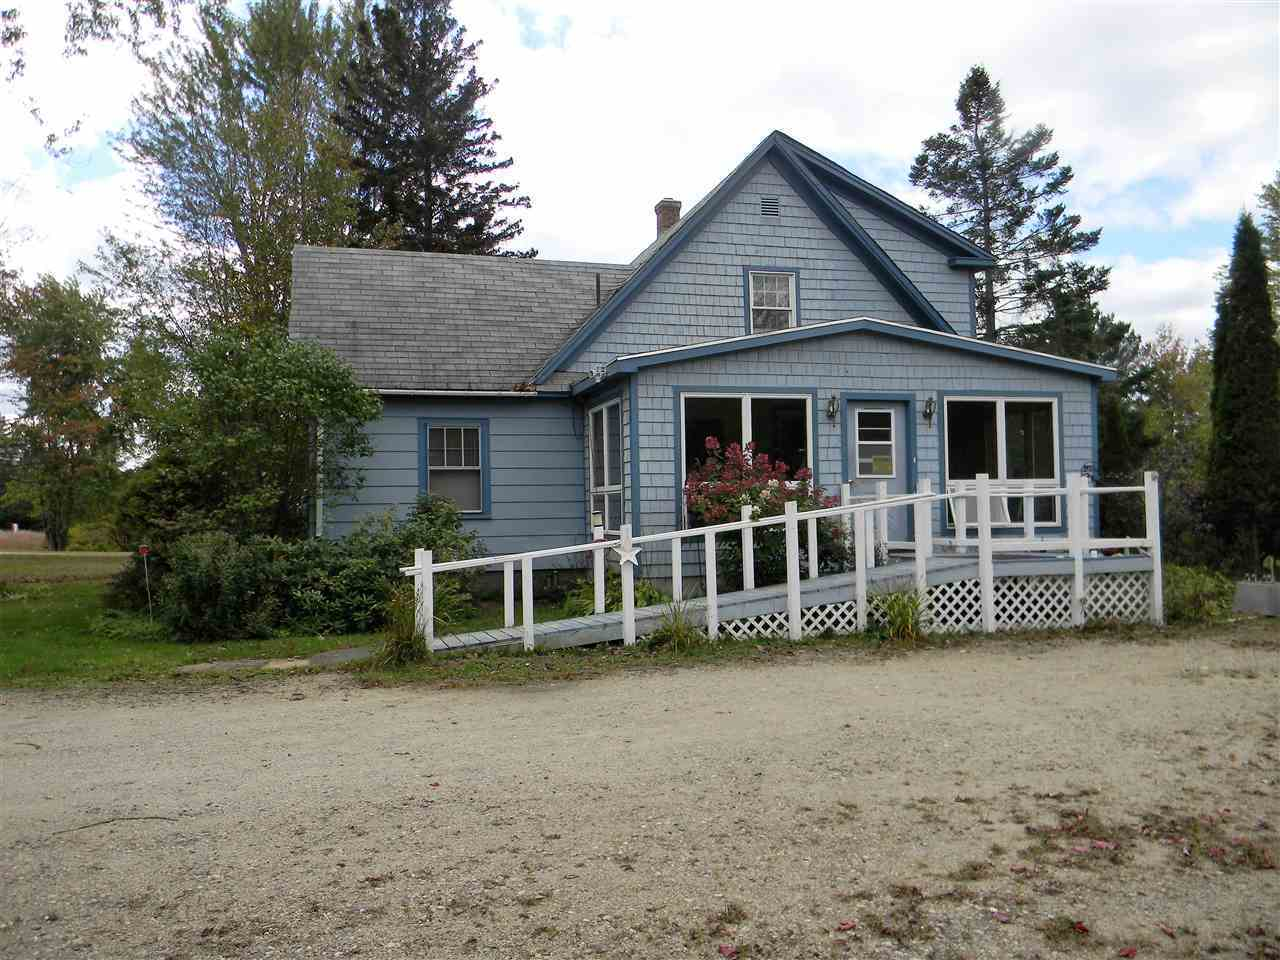 Surprising 10 New England Houses For Sale Asking Less Than 100 000 Home Interior And Landscaping Oversignezvosmurscom